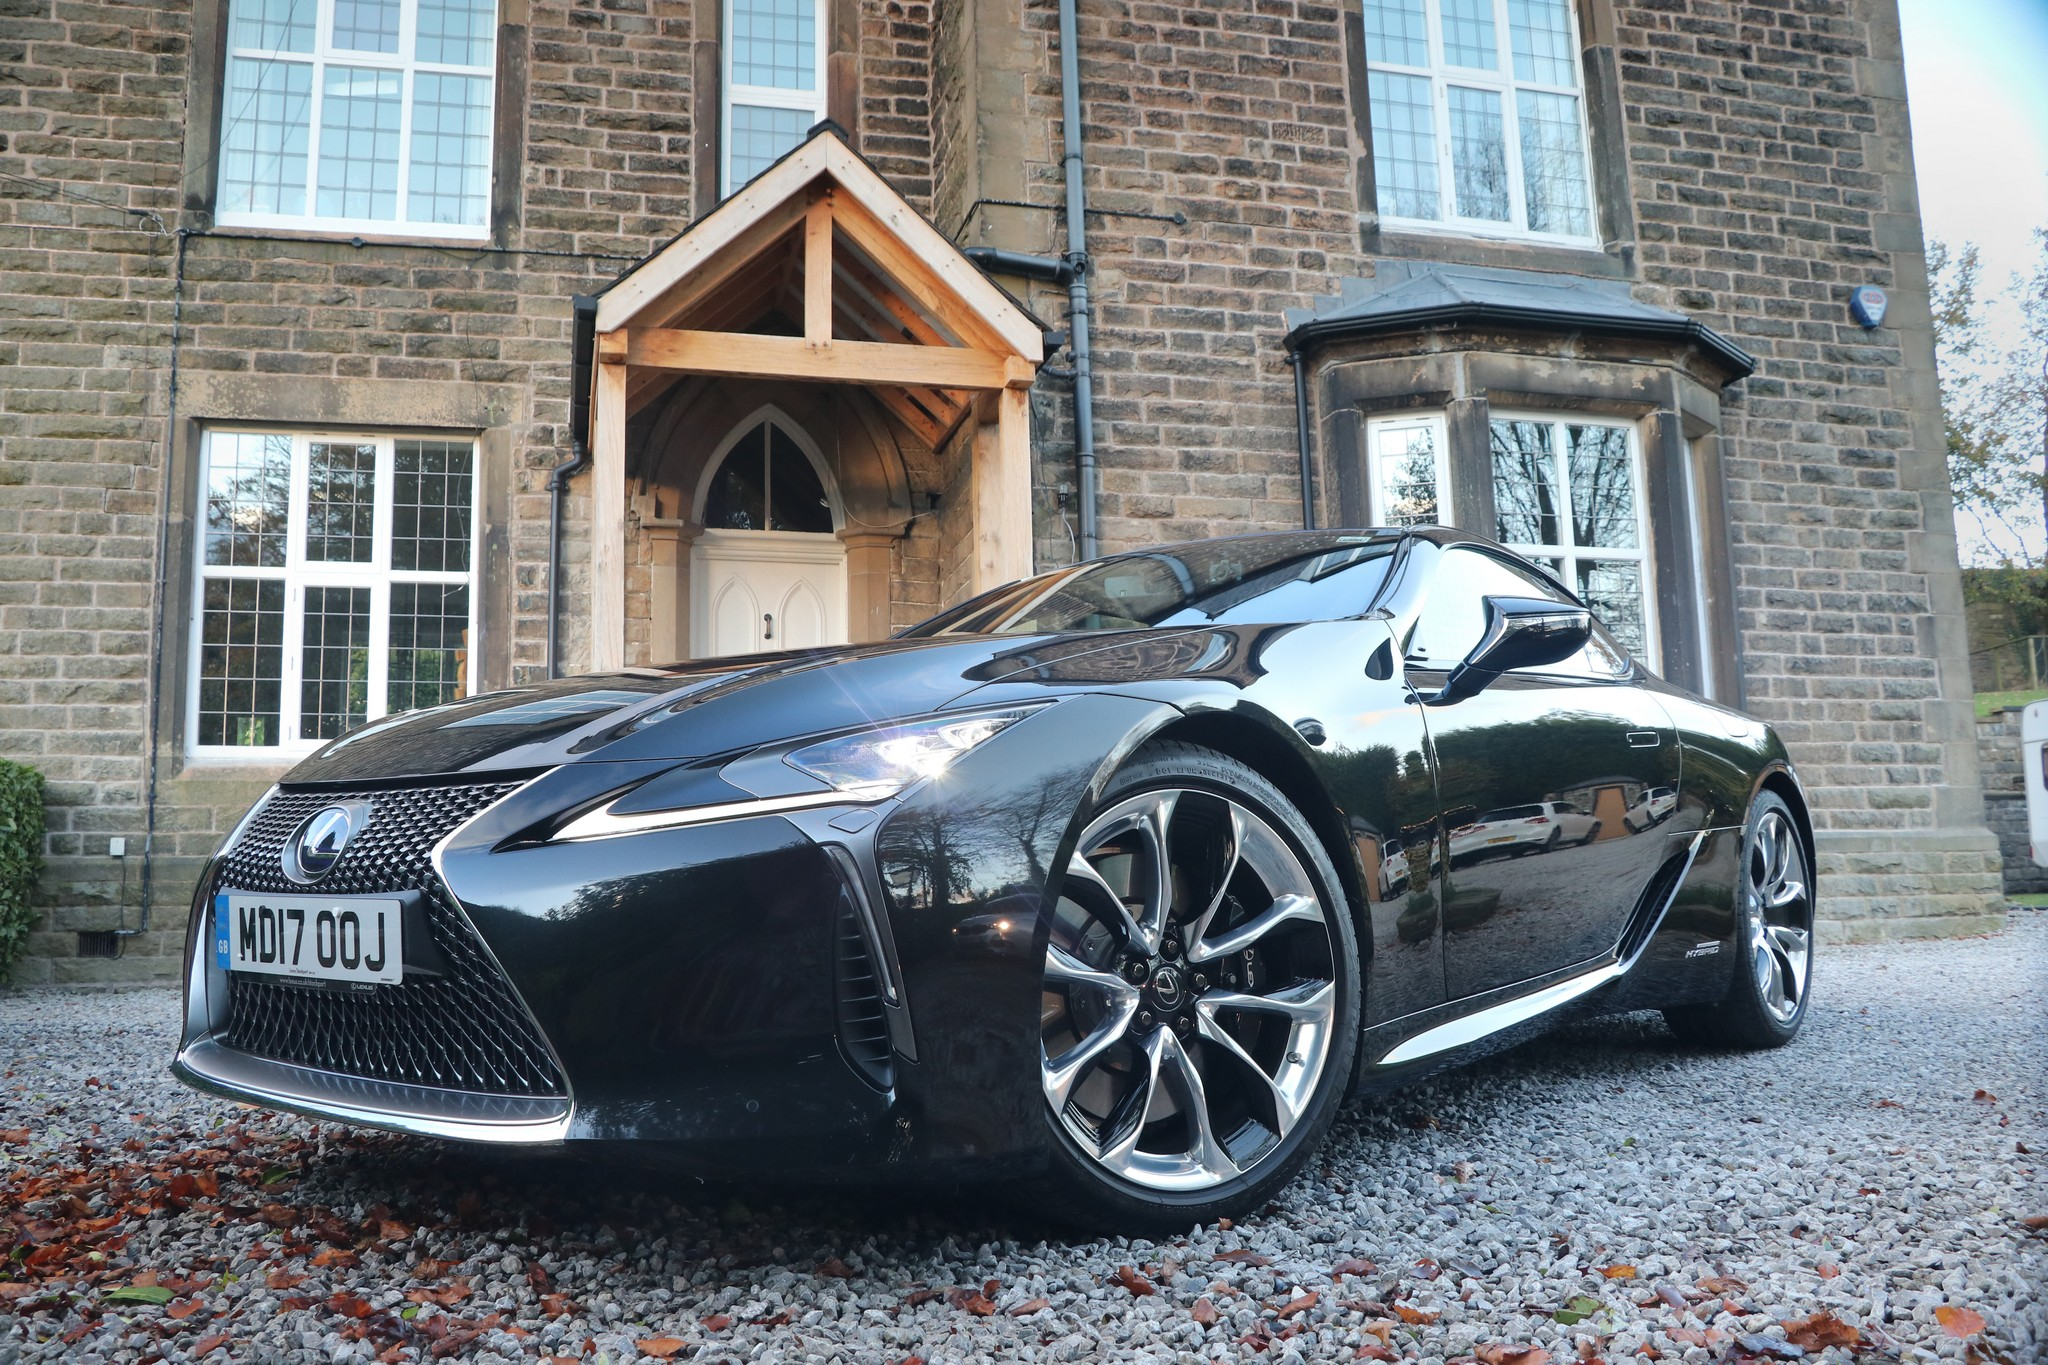 Lexus LC 500h Sports Coupe - Full review coming soon . . .